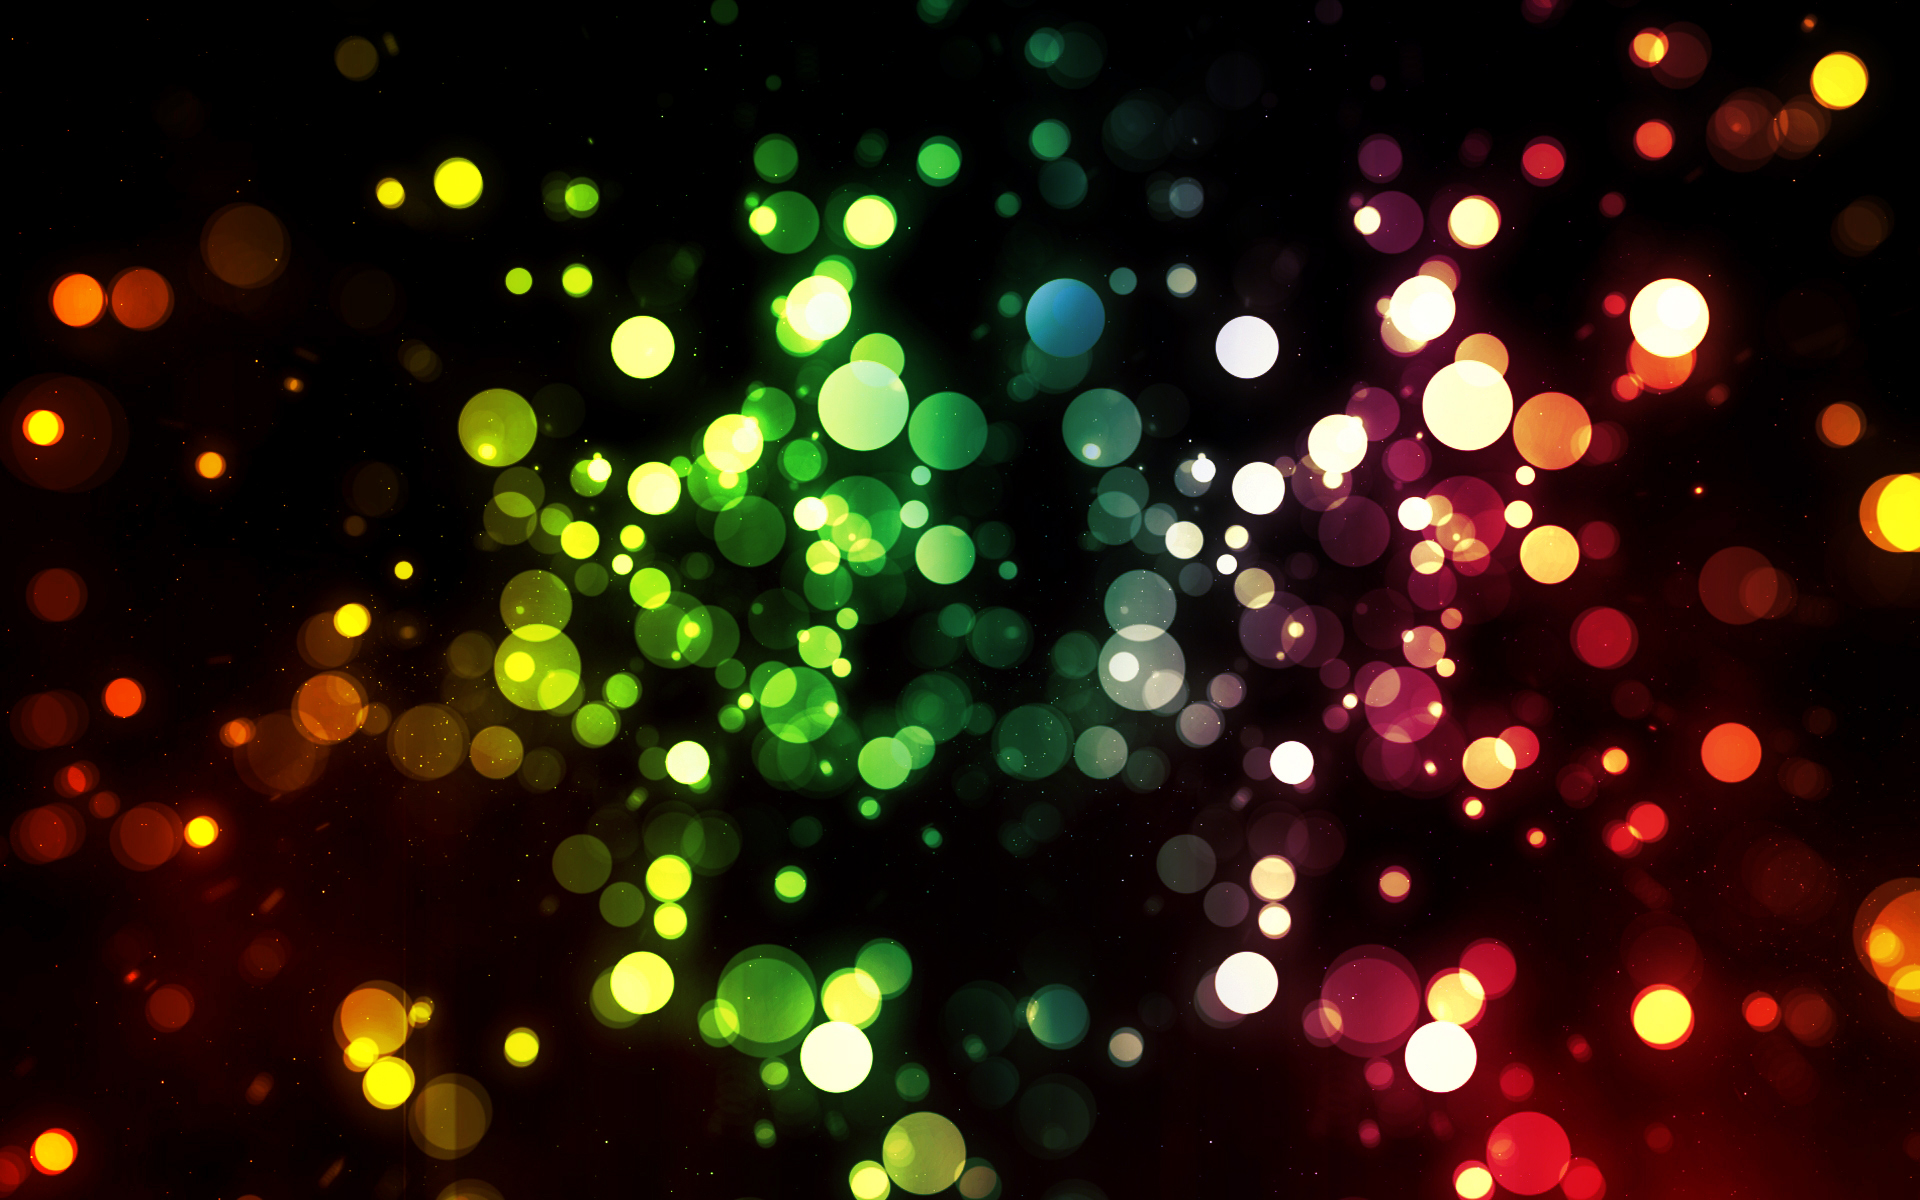 Colors Sparkle Wallpapers Let The Colors Sparkle Myspace Backgrounds 1920x1200